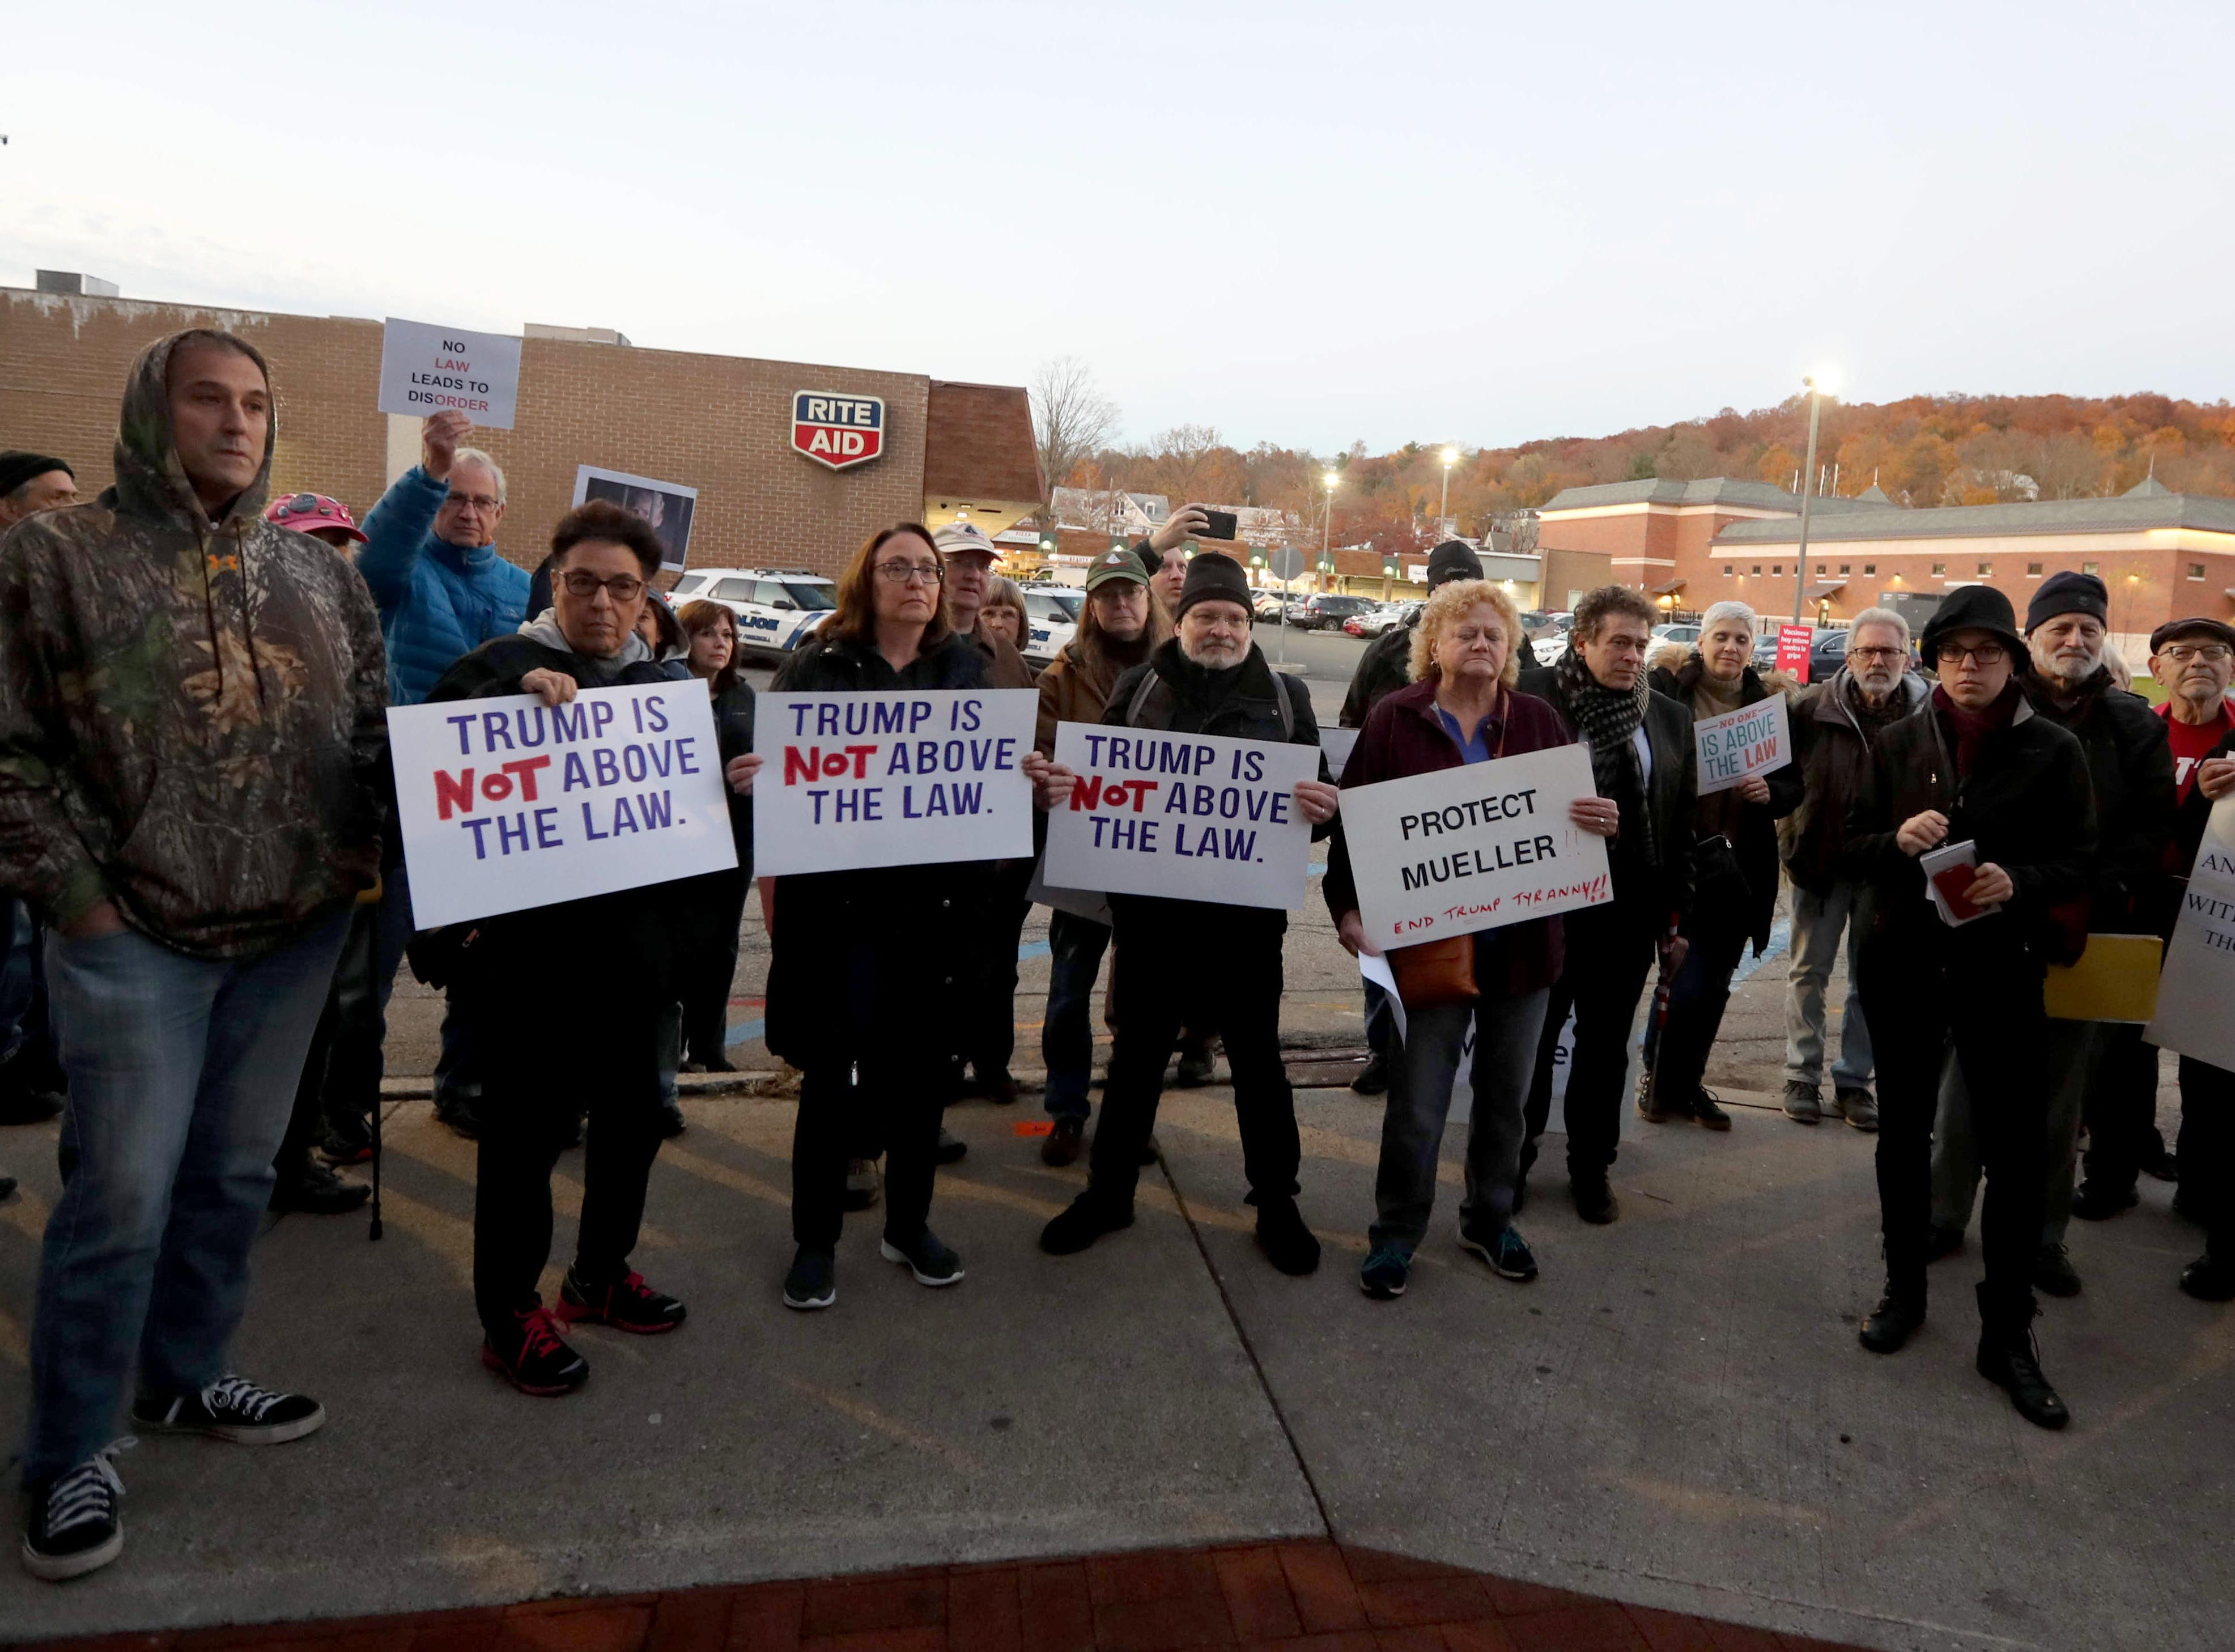 Over one-hundred people attended a rally in front of Senator Chuck Schumer's local office in Peekskill calling for the protection of the Robert Mueller's investigation Nov. 8, 2018. The protest, which coincided with similar protests across the nation, came in the wake of President Trump's firing of Attorney General Jeff Sessions.